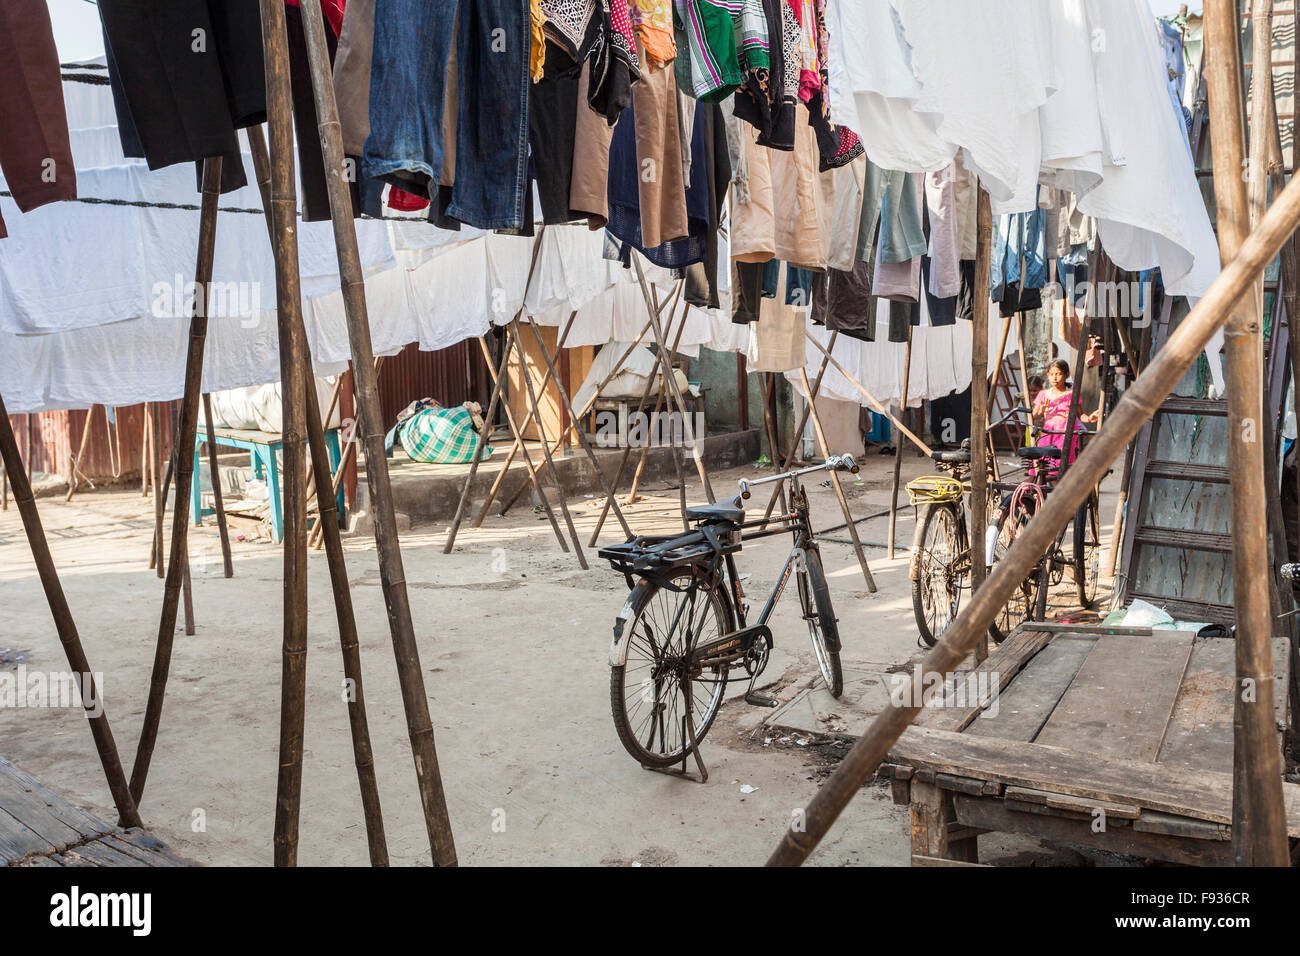 A bicycle and clothes drying at Dhobi Ghat, a large open air laundromat in Mumbai, India - Stock Image